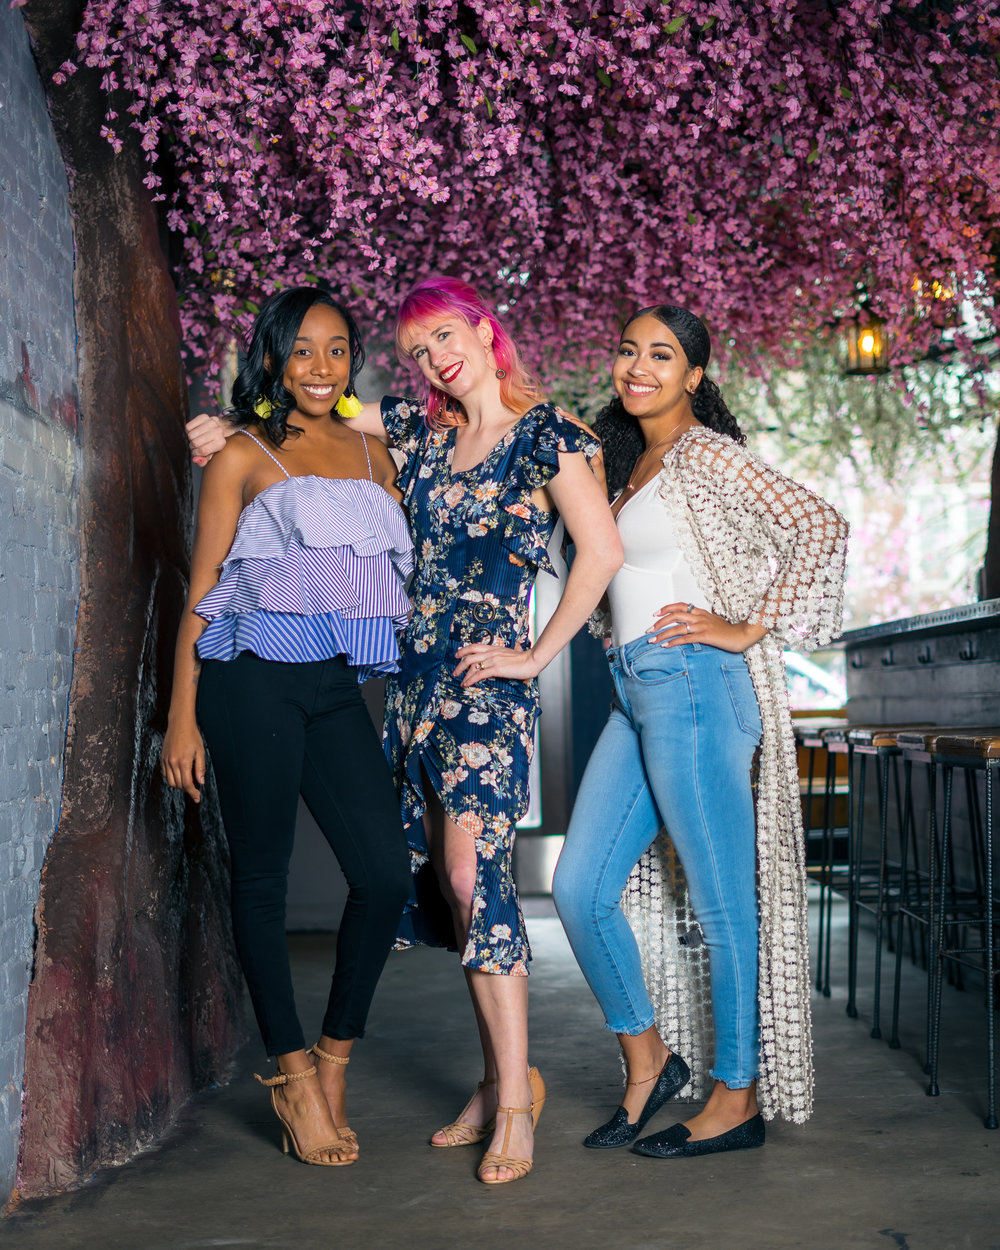 On Kandace:  Flounce Top ($44), Black Jeans ($64)  On Kiki:  Floral Wrap Dress ($96)  On Tia:  White Bodysuit ($16), Pearl Floral Kimono ($165), Jeans ($64)